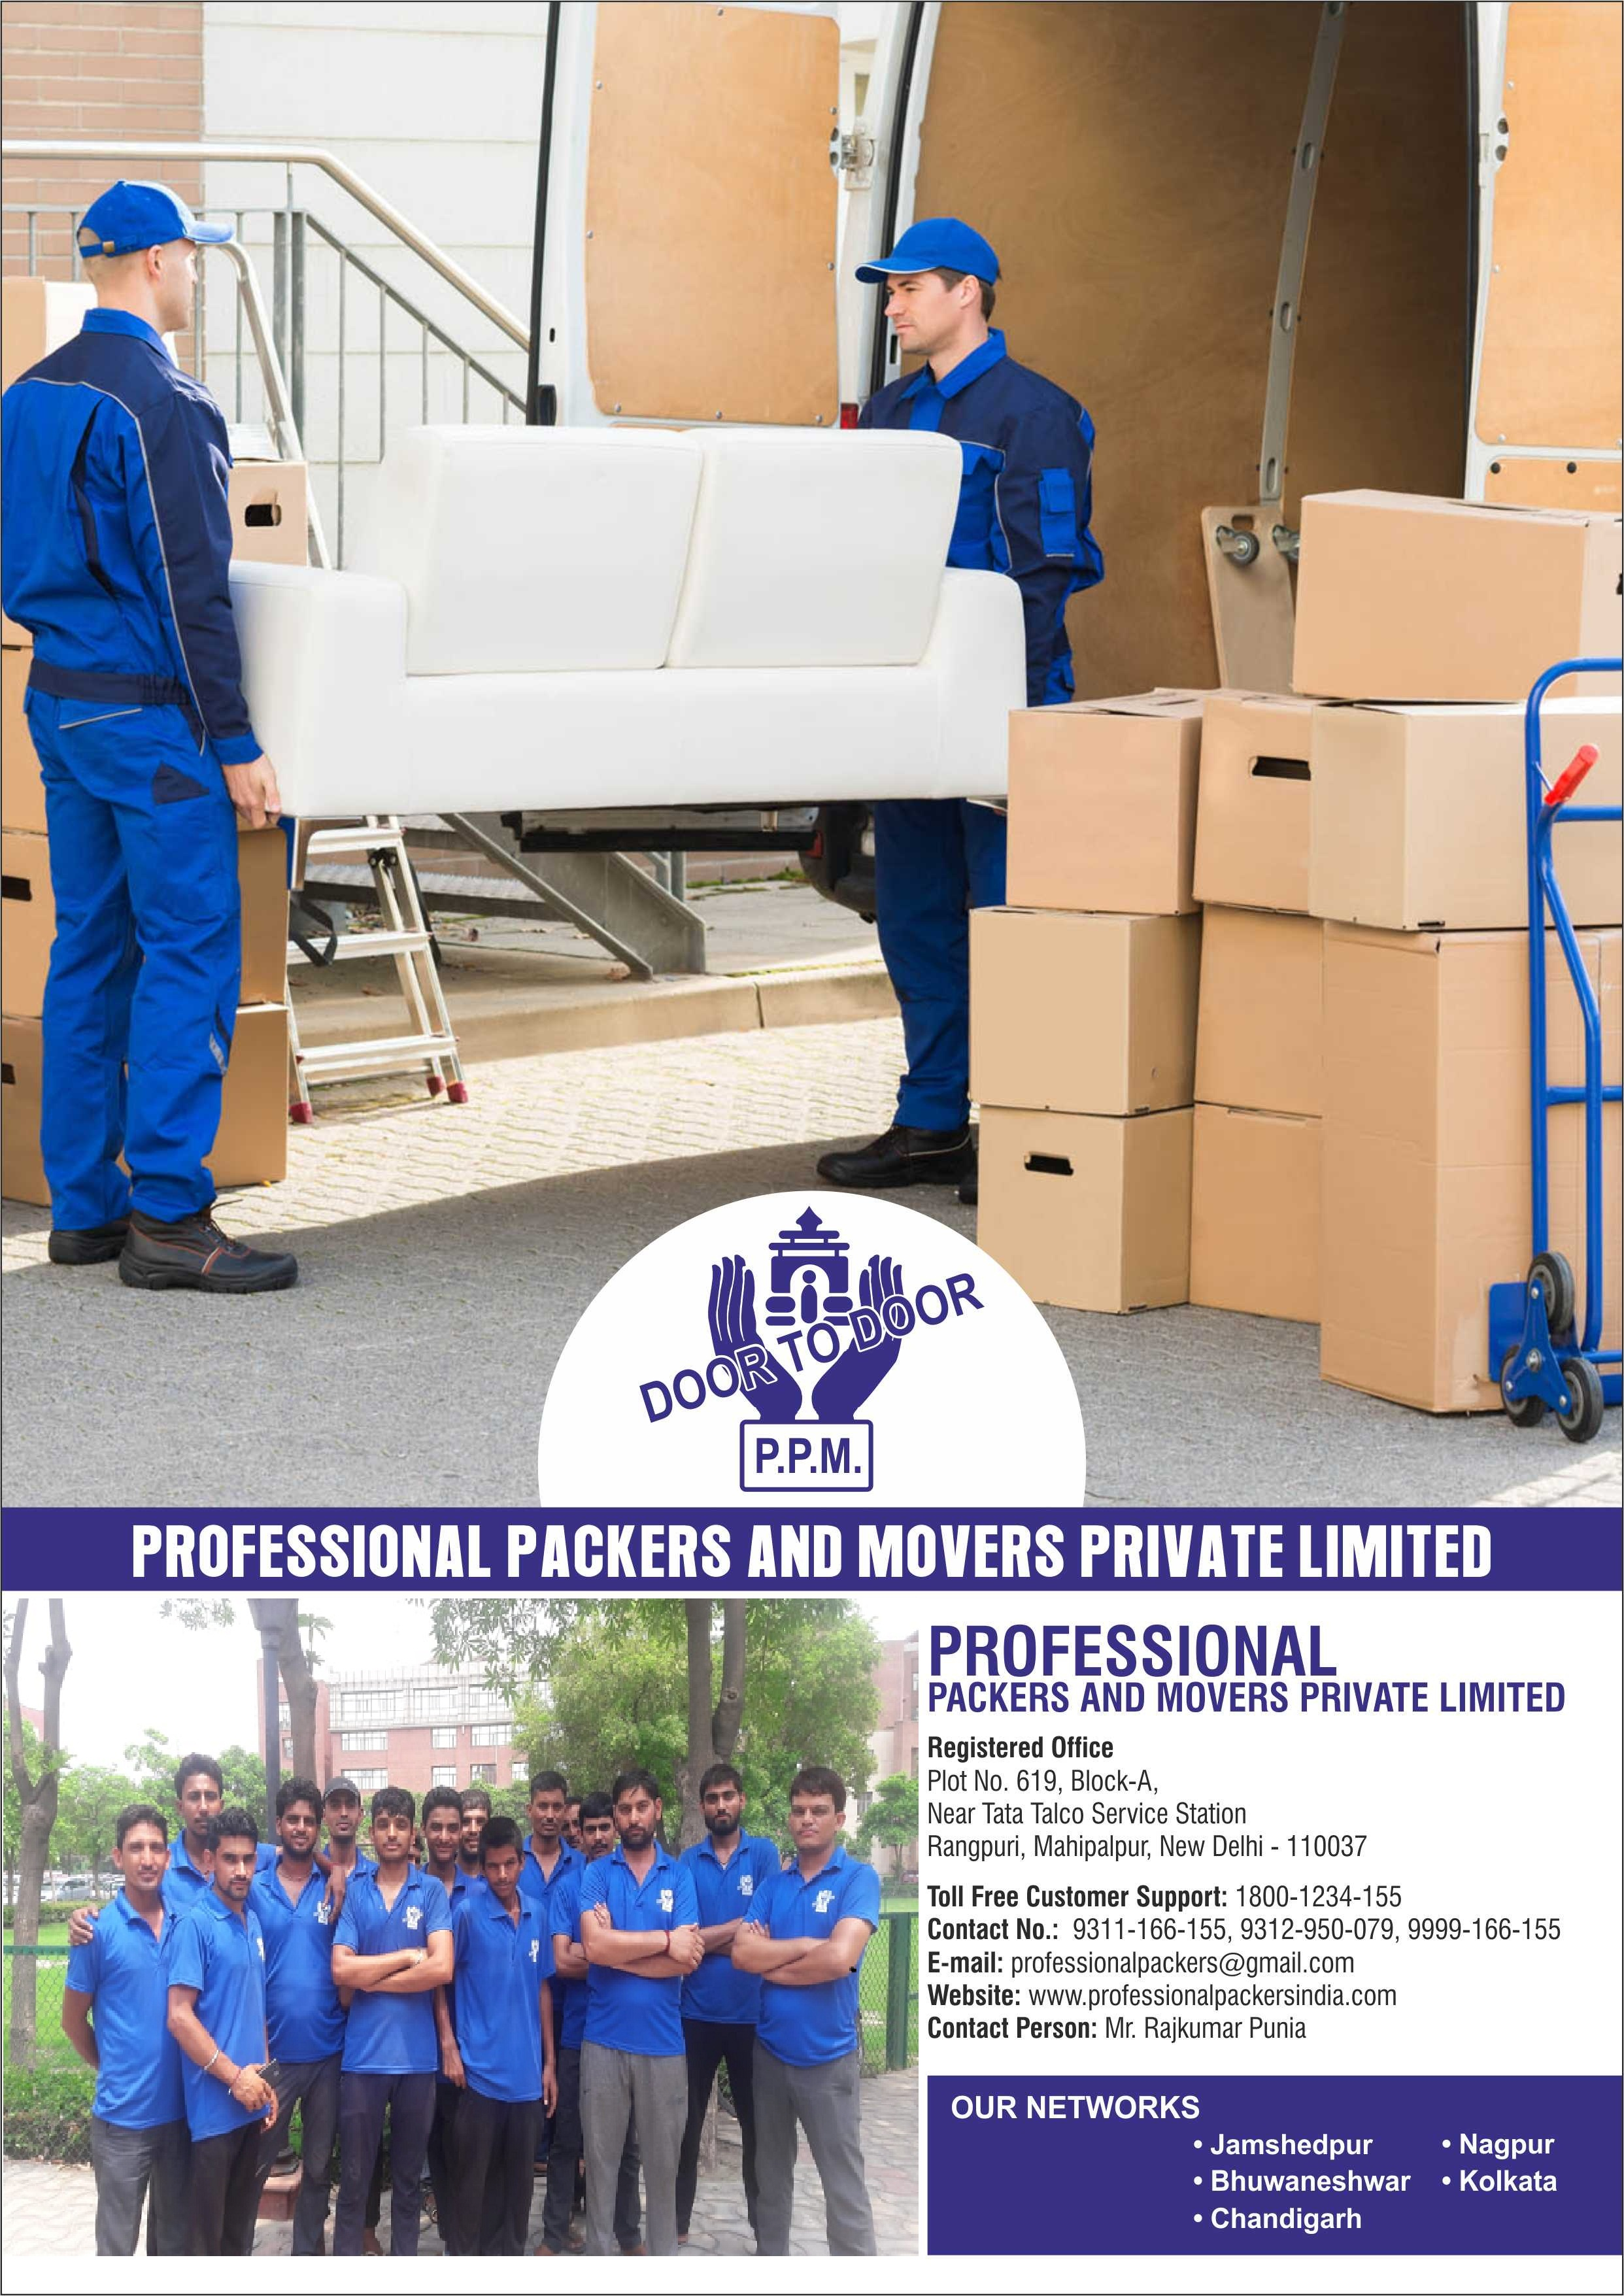 Professional Packers And Movers Chandigarh Packers Movers-Services-Moving & Storage Services-Chandigarh